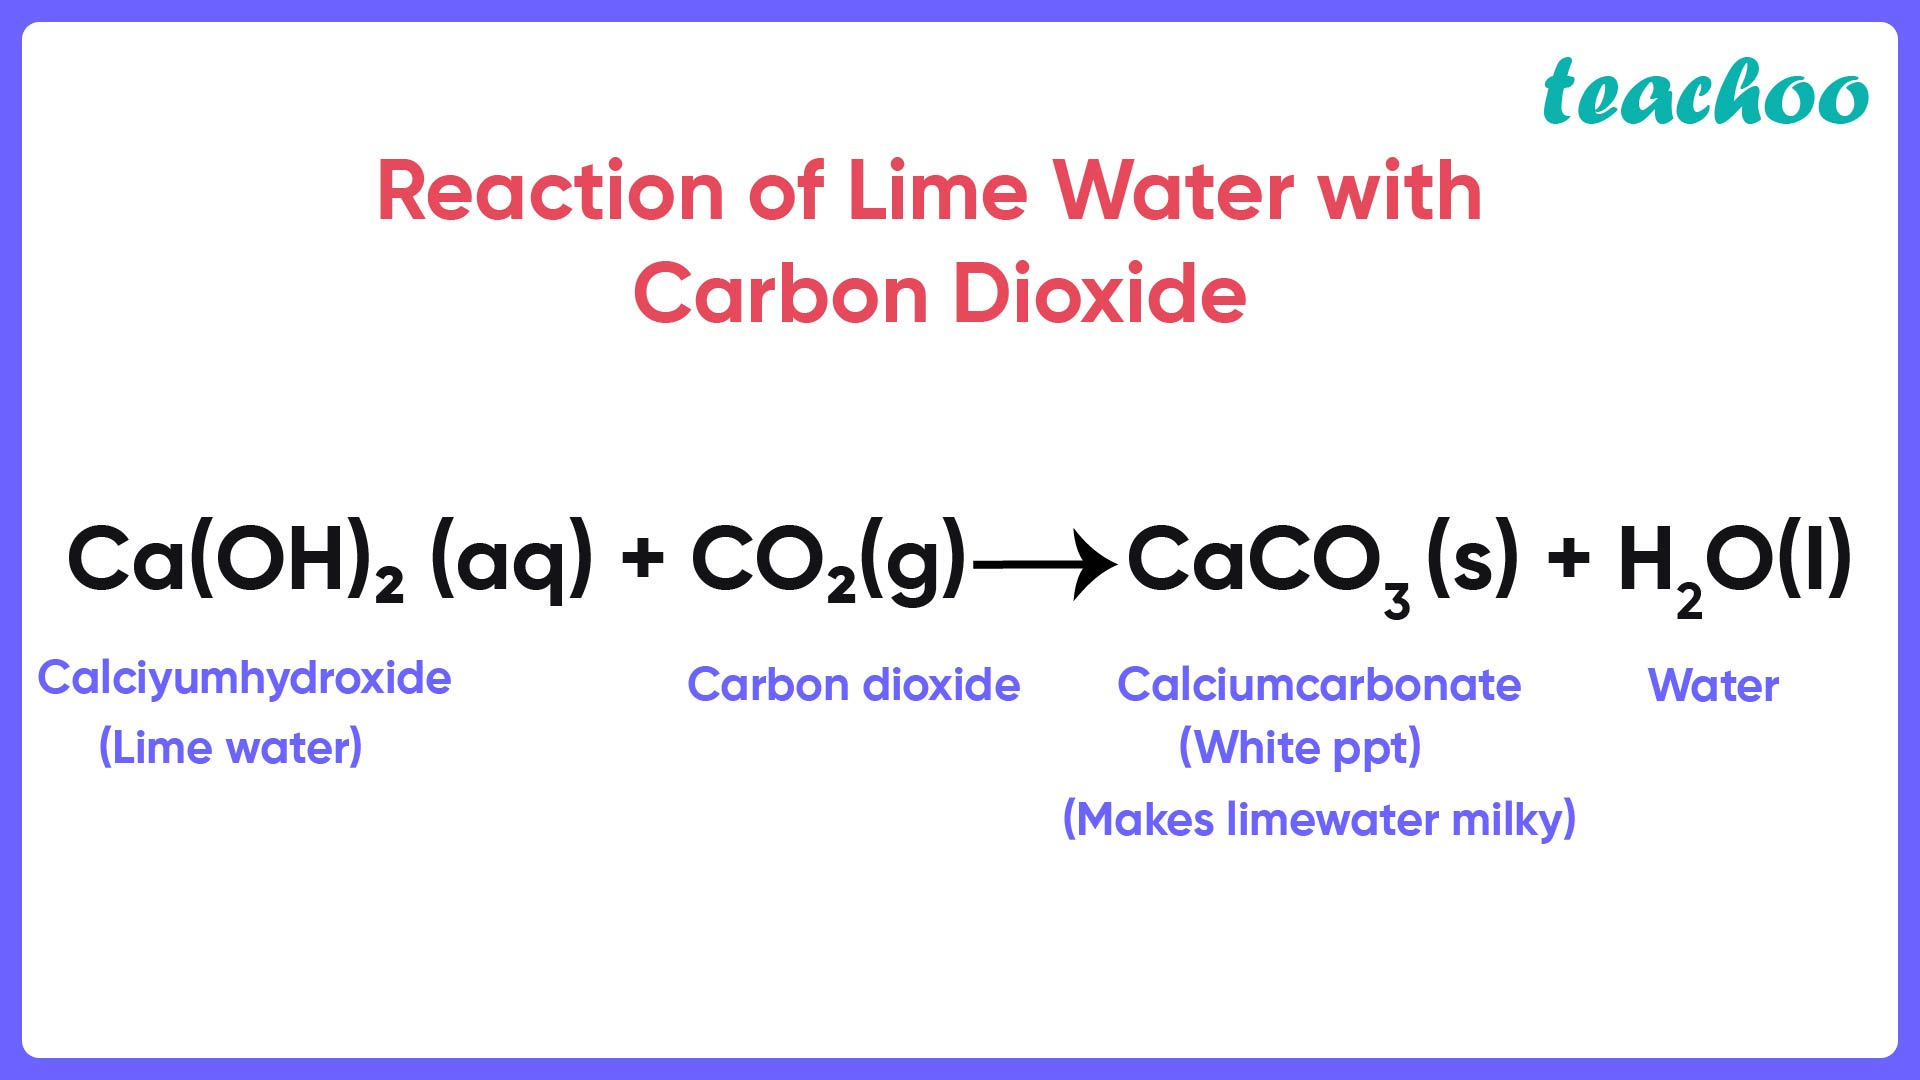 Reaction of Lime Water with Carbon Dioxide - Teachoo-01.jpg